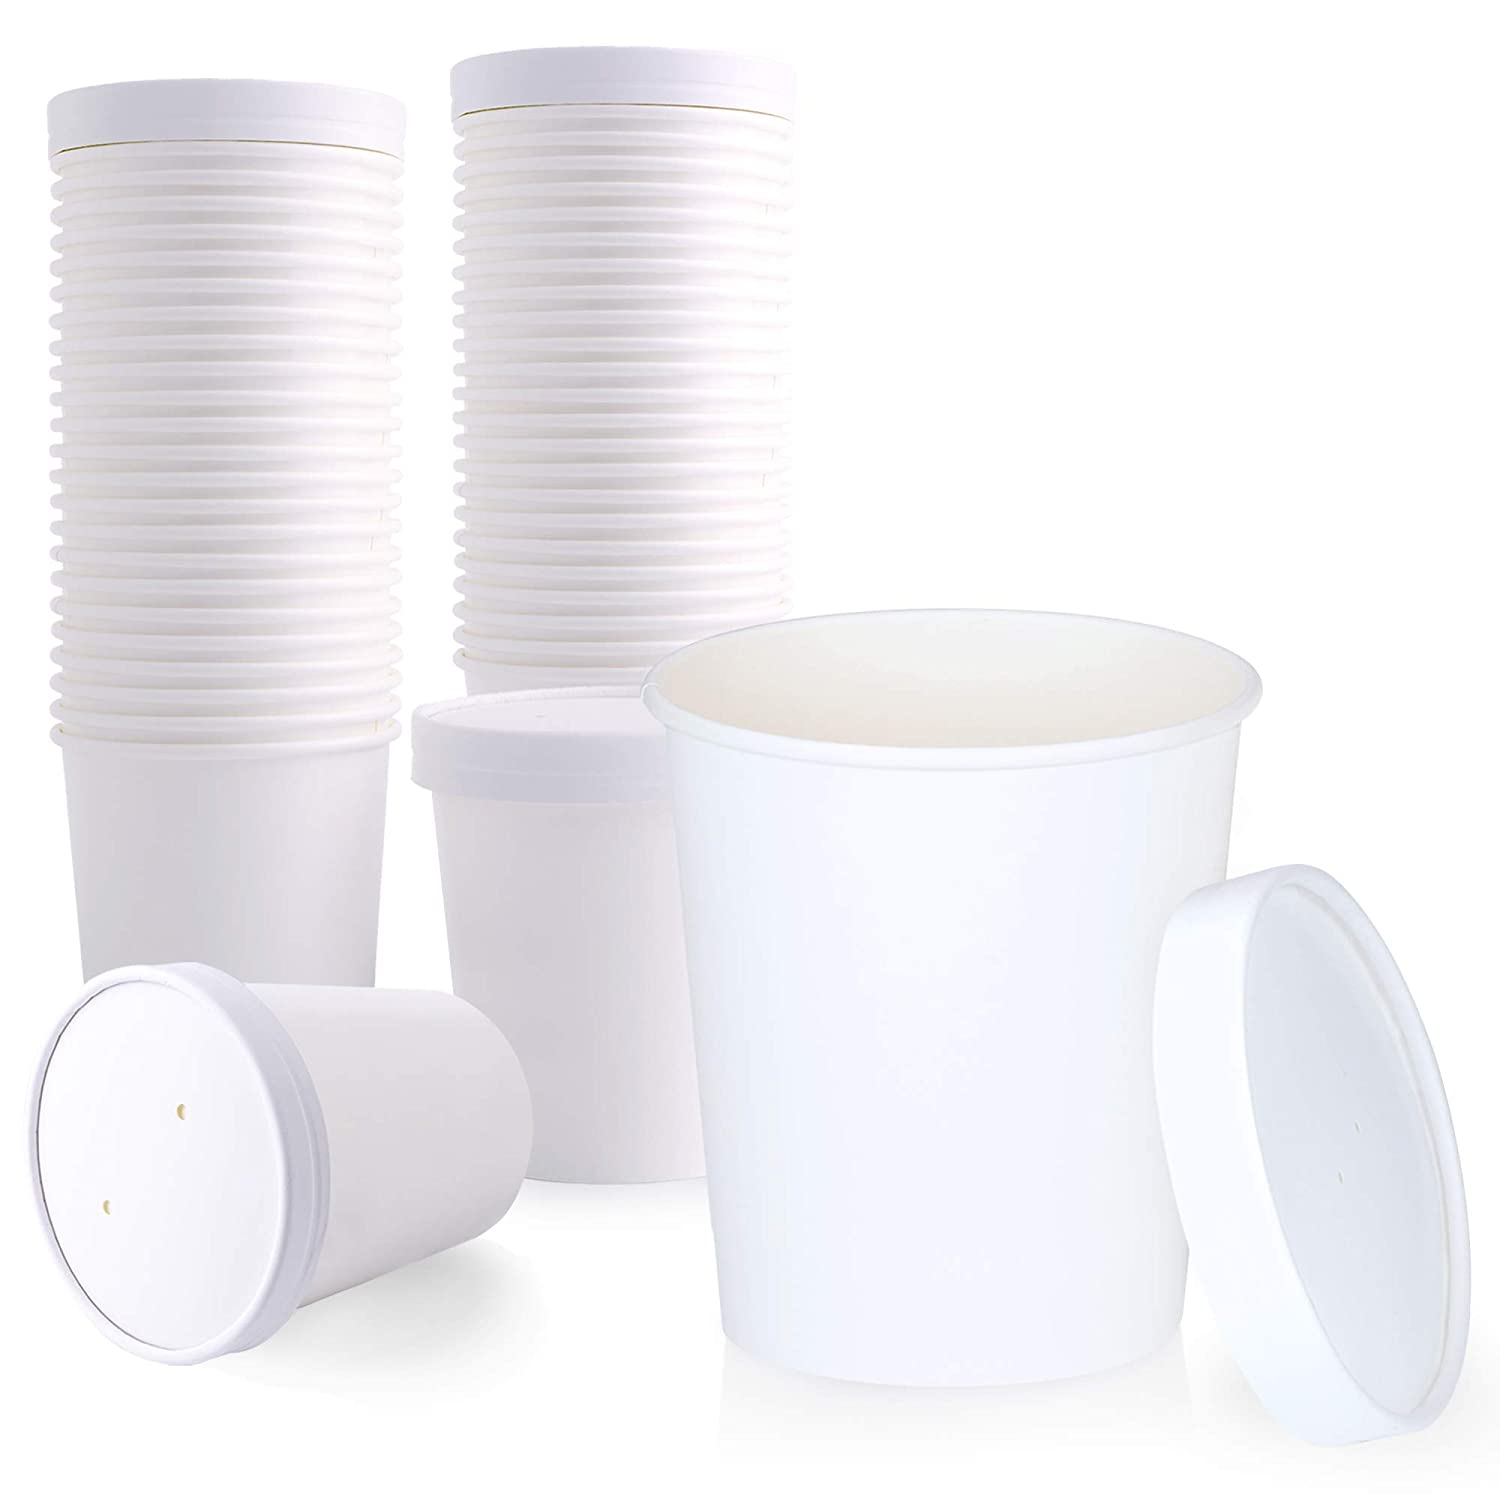 [25 Pack] 32 oz White Paper Food Cup with Vented Lid - Disposable Kraft Ice Cream Bucket, Rolled Rim Storage, Hot Cold Dish to Go Packaging Soup Cups Ramen Stews Salad Frozen Dessert Yogurt Container